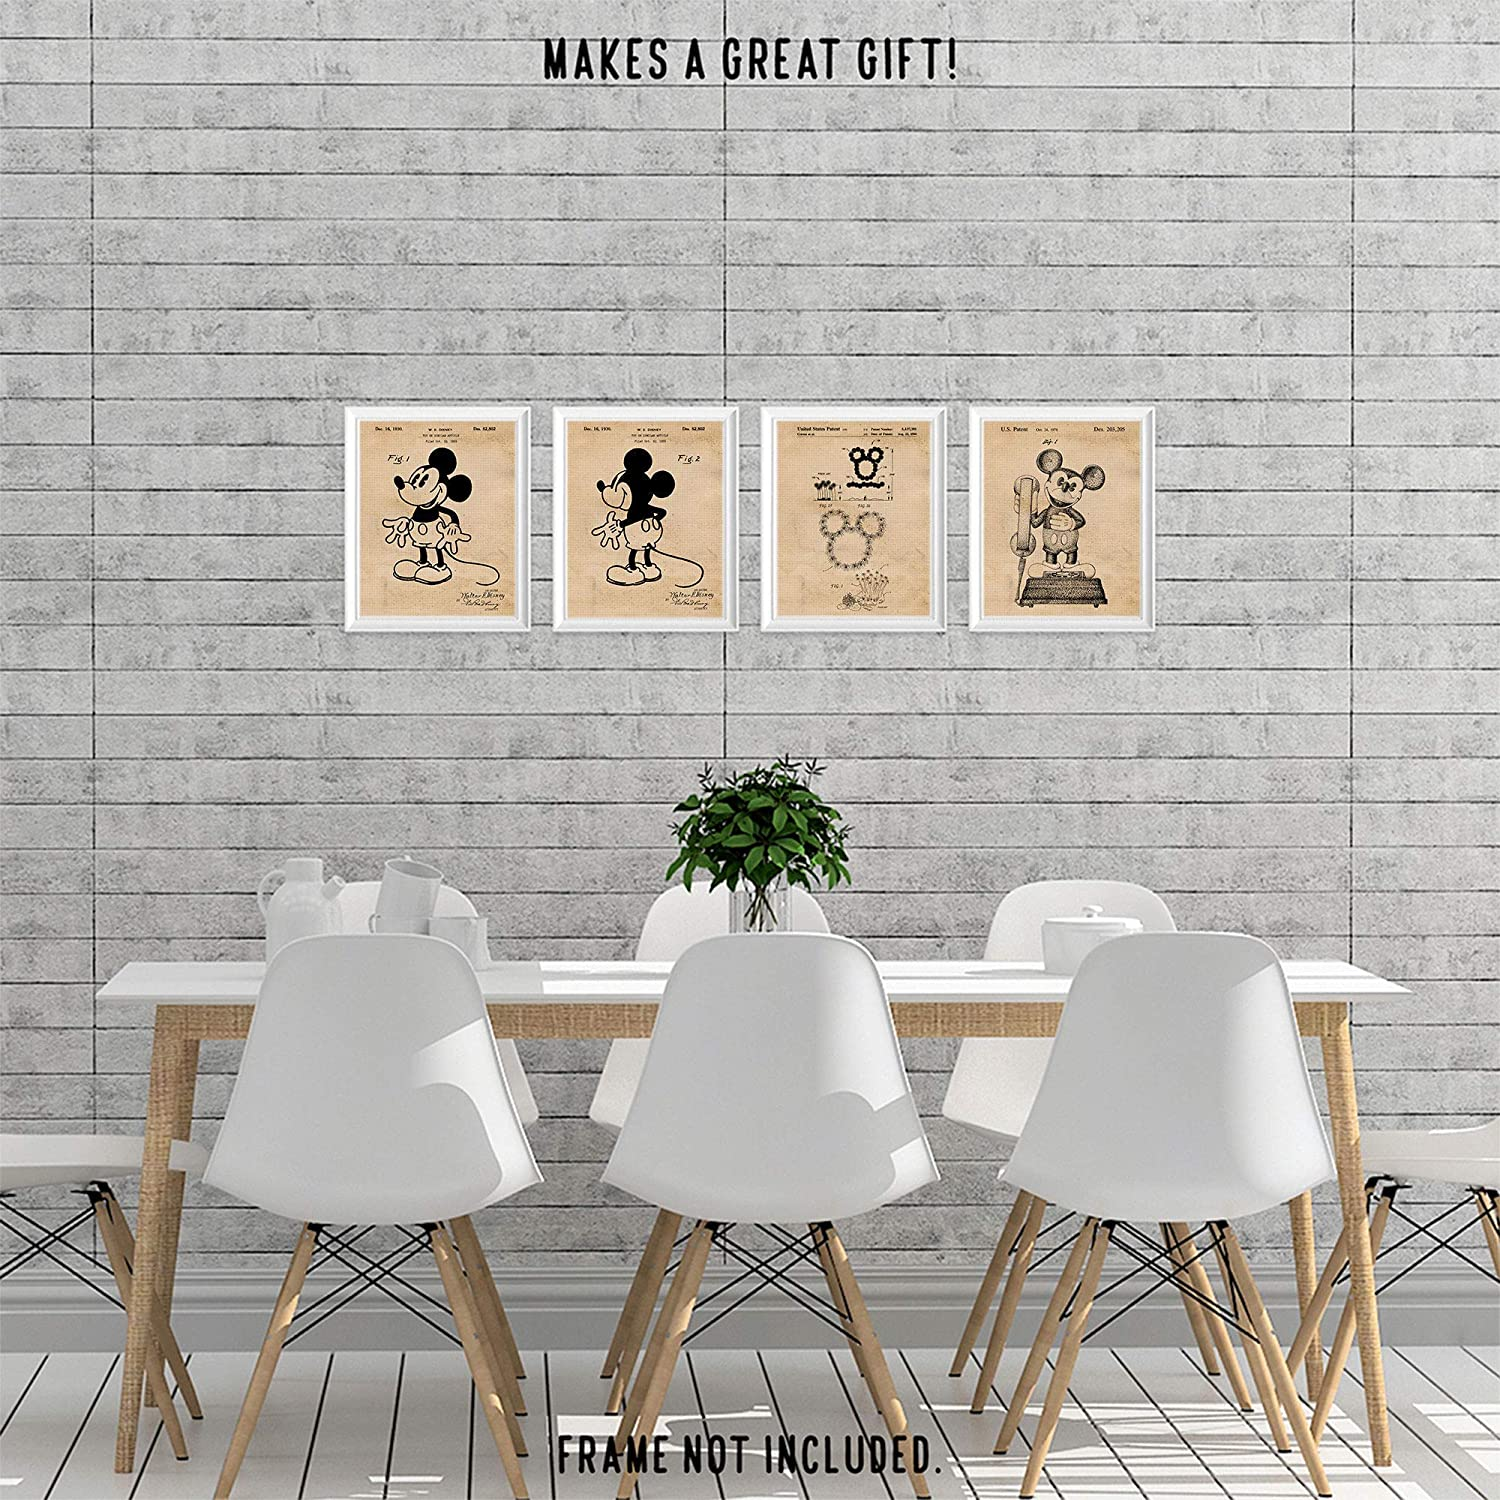 Office Walt Disney Fan Garage Teacher Unframed Photos Man Cave College Student 8x10 Set of 4 Vintage Mickey Mouse Patent Vintage Style Poster Prints Wall Art Decor Gifts Under 20 for Home